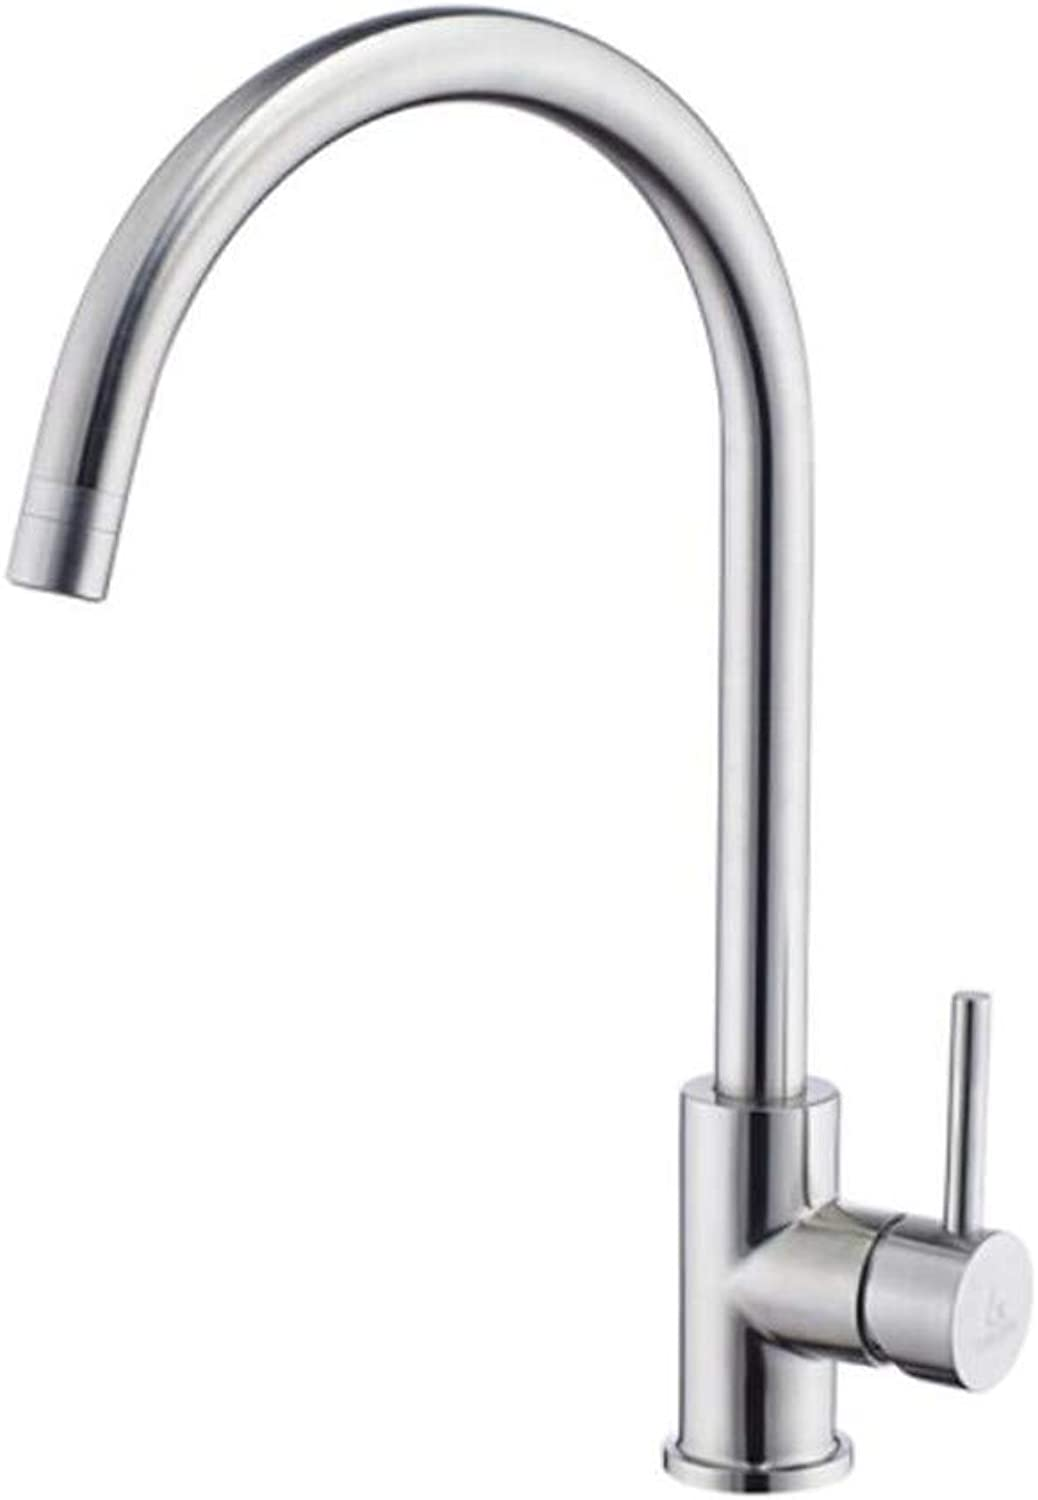 Taps Mixer?Swivel?Faucet Sink Kitchen Faucet Cold and Hot 304 Stainless Steel Dishwash Basin Sink Single Cold redating Lead-Free Faucet